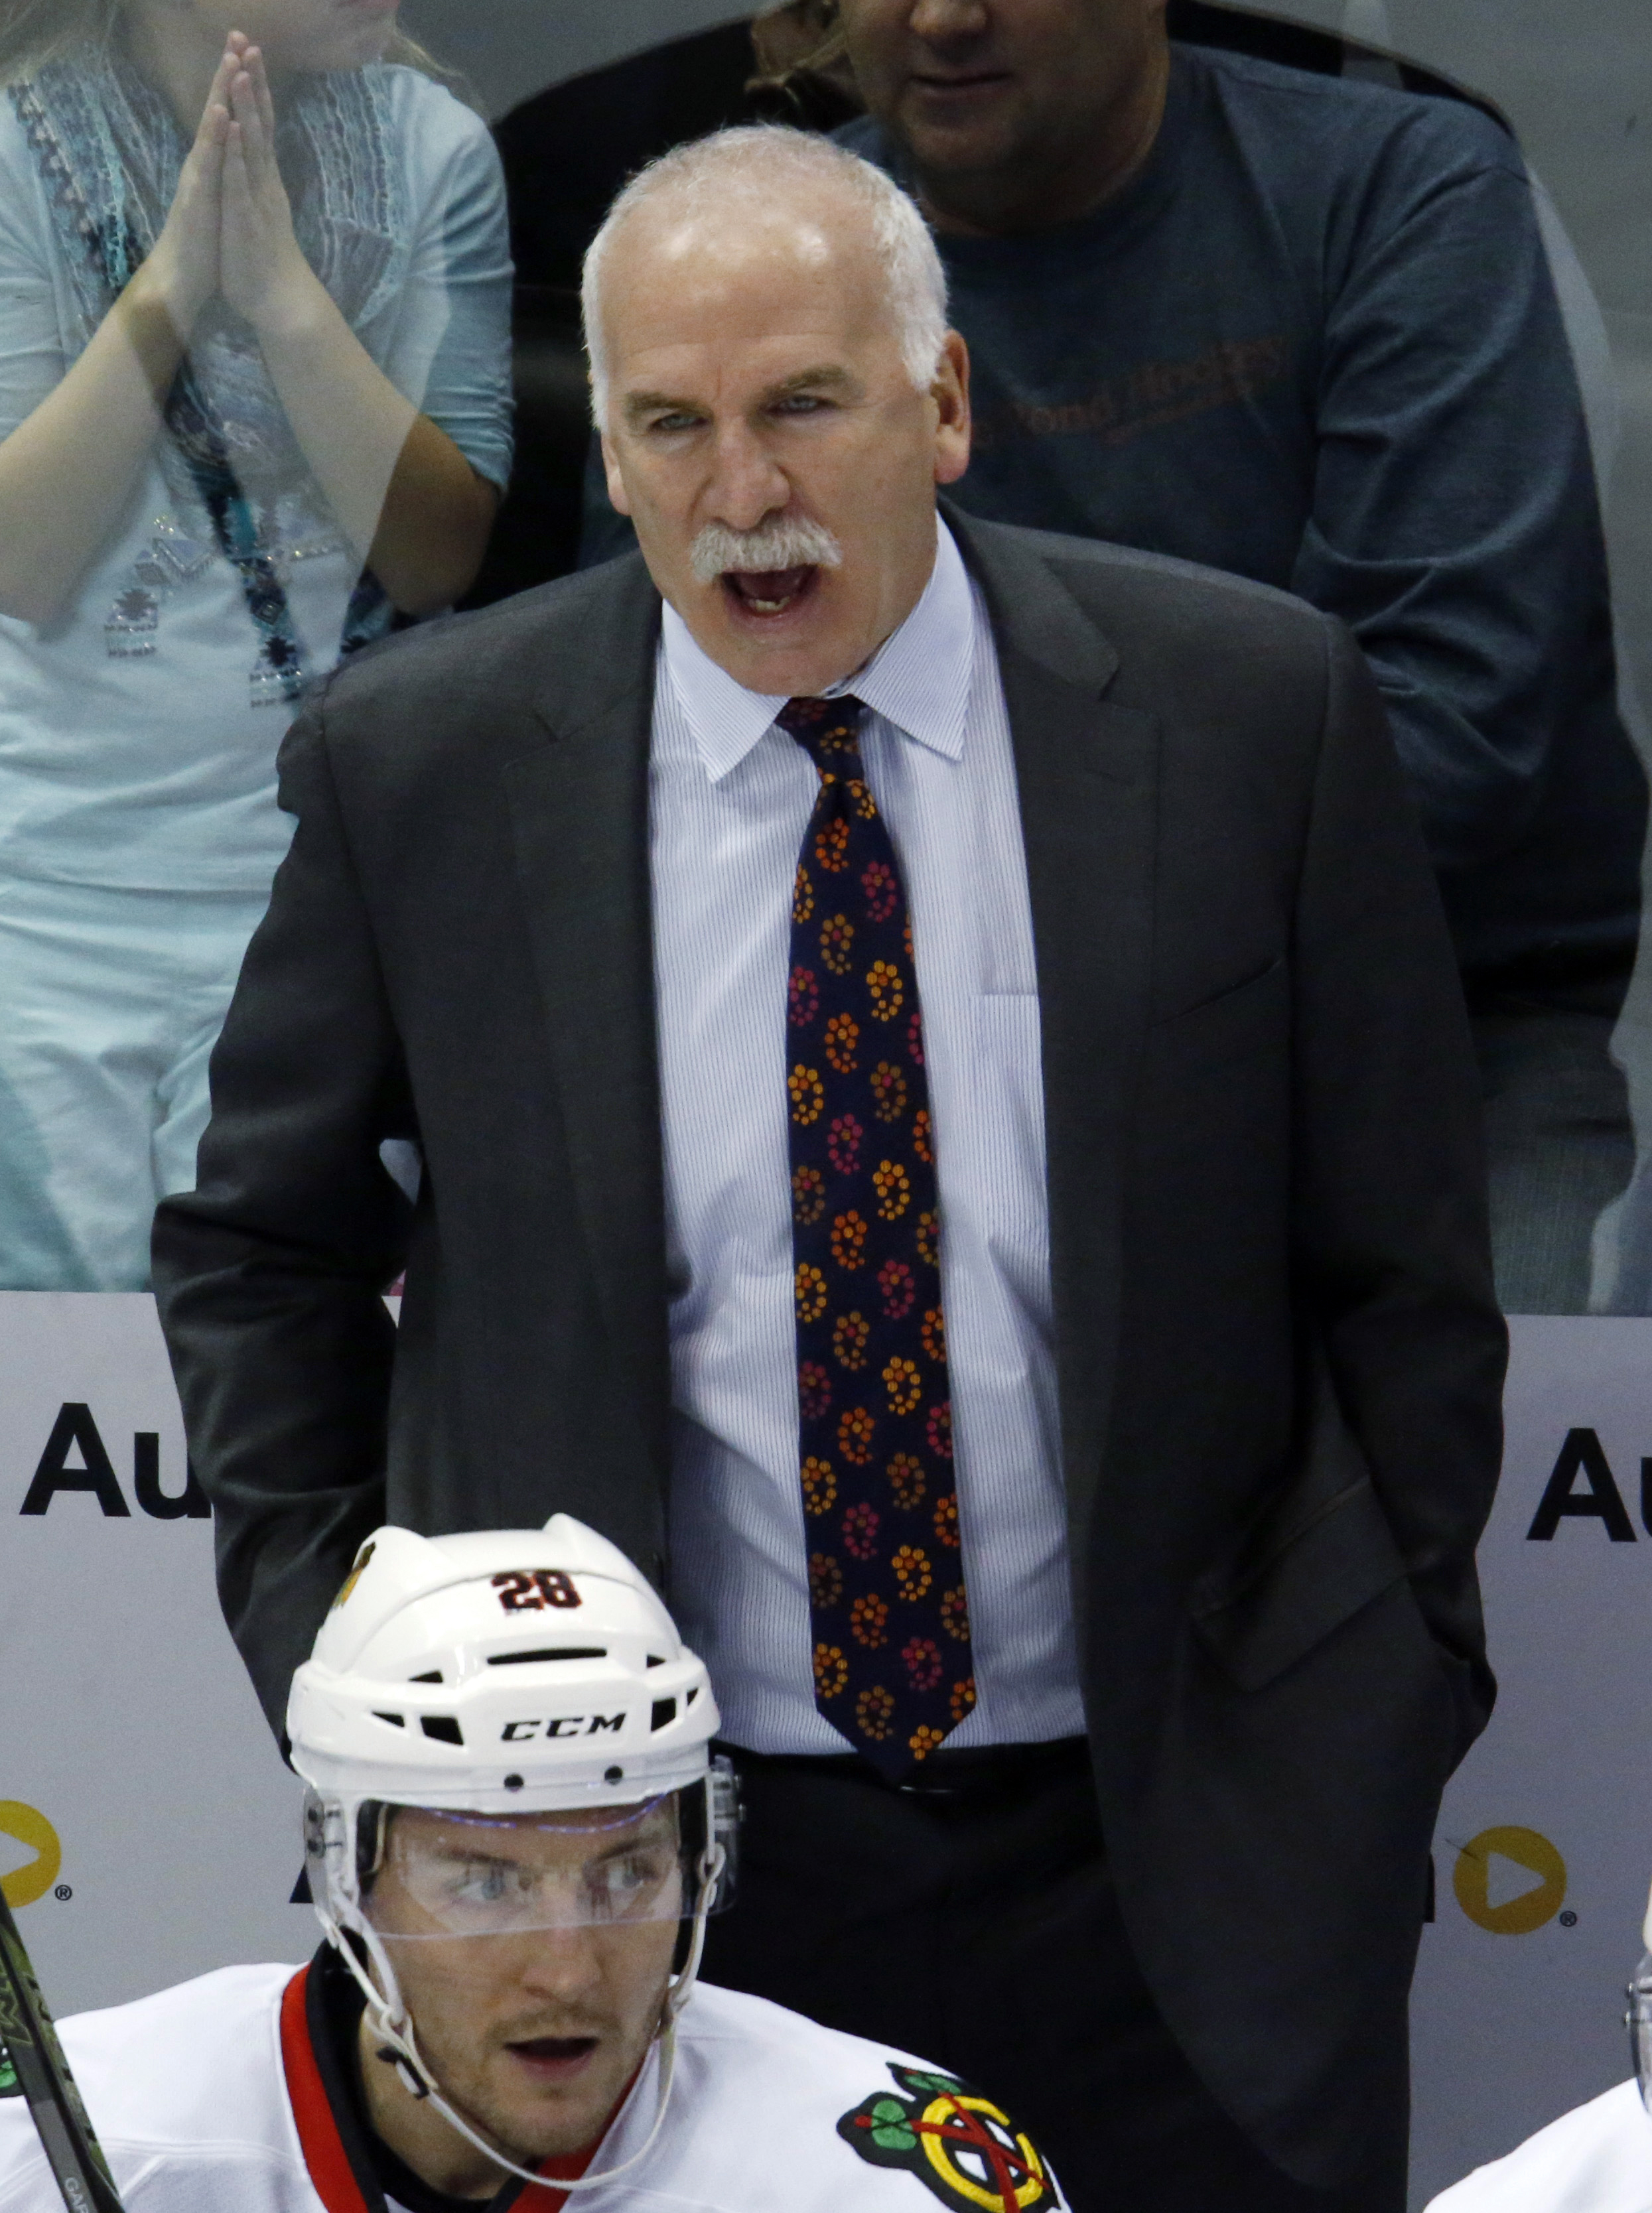 Chicago Blackhawks head coach Joel Quenneville, top, directs his team against the Colorado Avalanche in third period of an NHL hockey game Thursday, Dec. 31, 2015, in Denver. Chicago won 4-3 in overtime. (AP Photo/David Zalubowski)